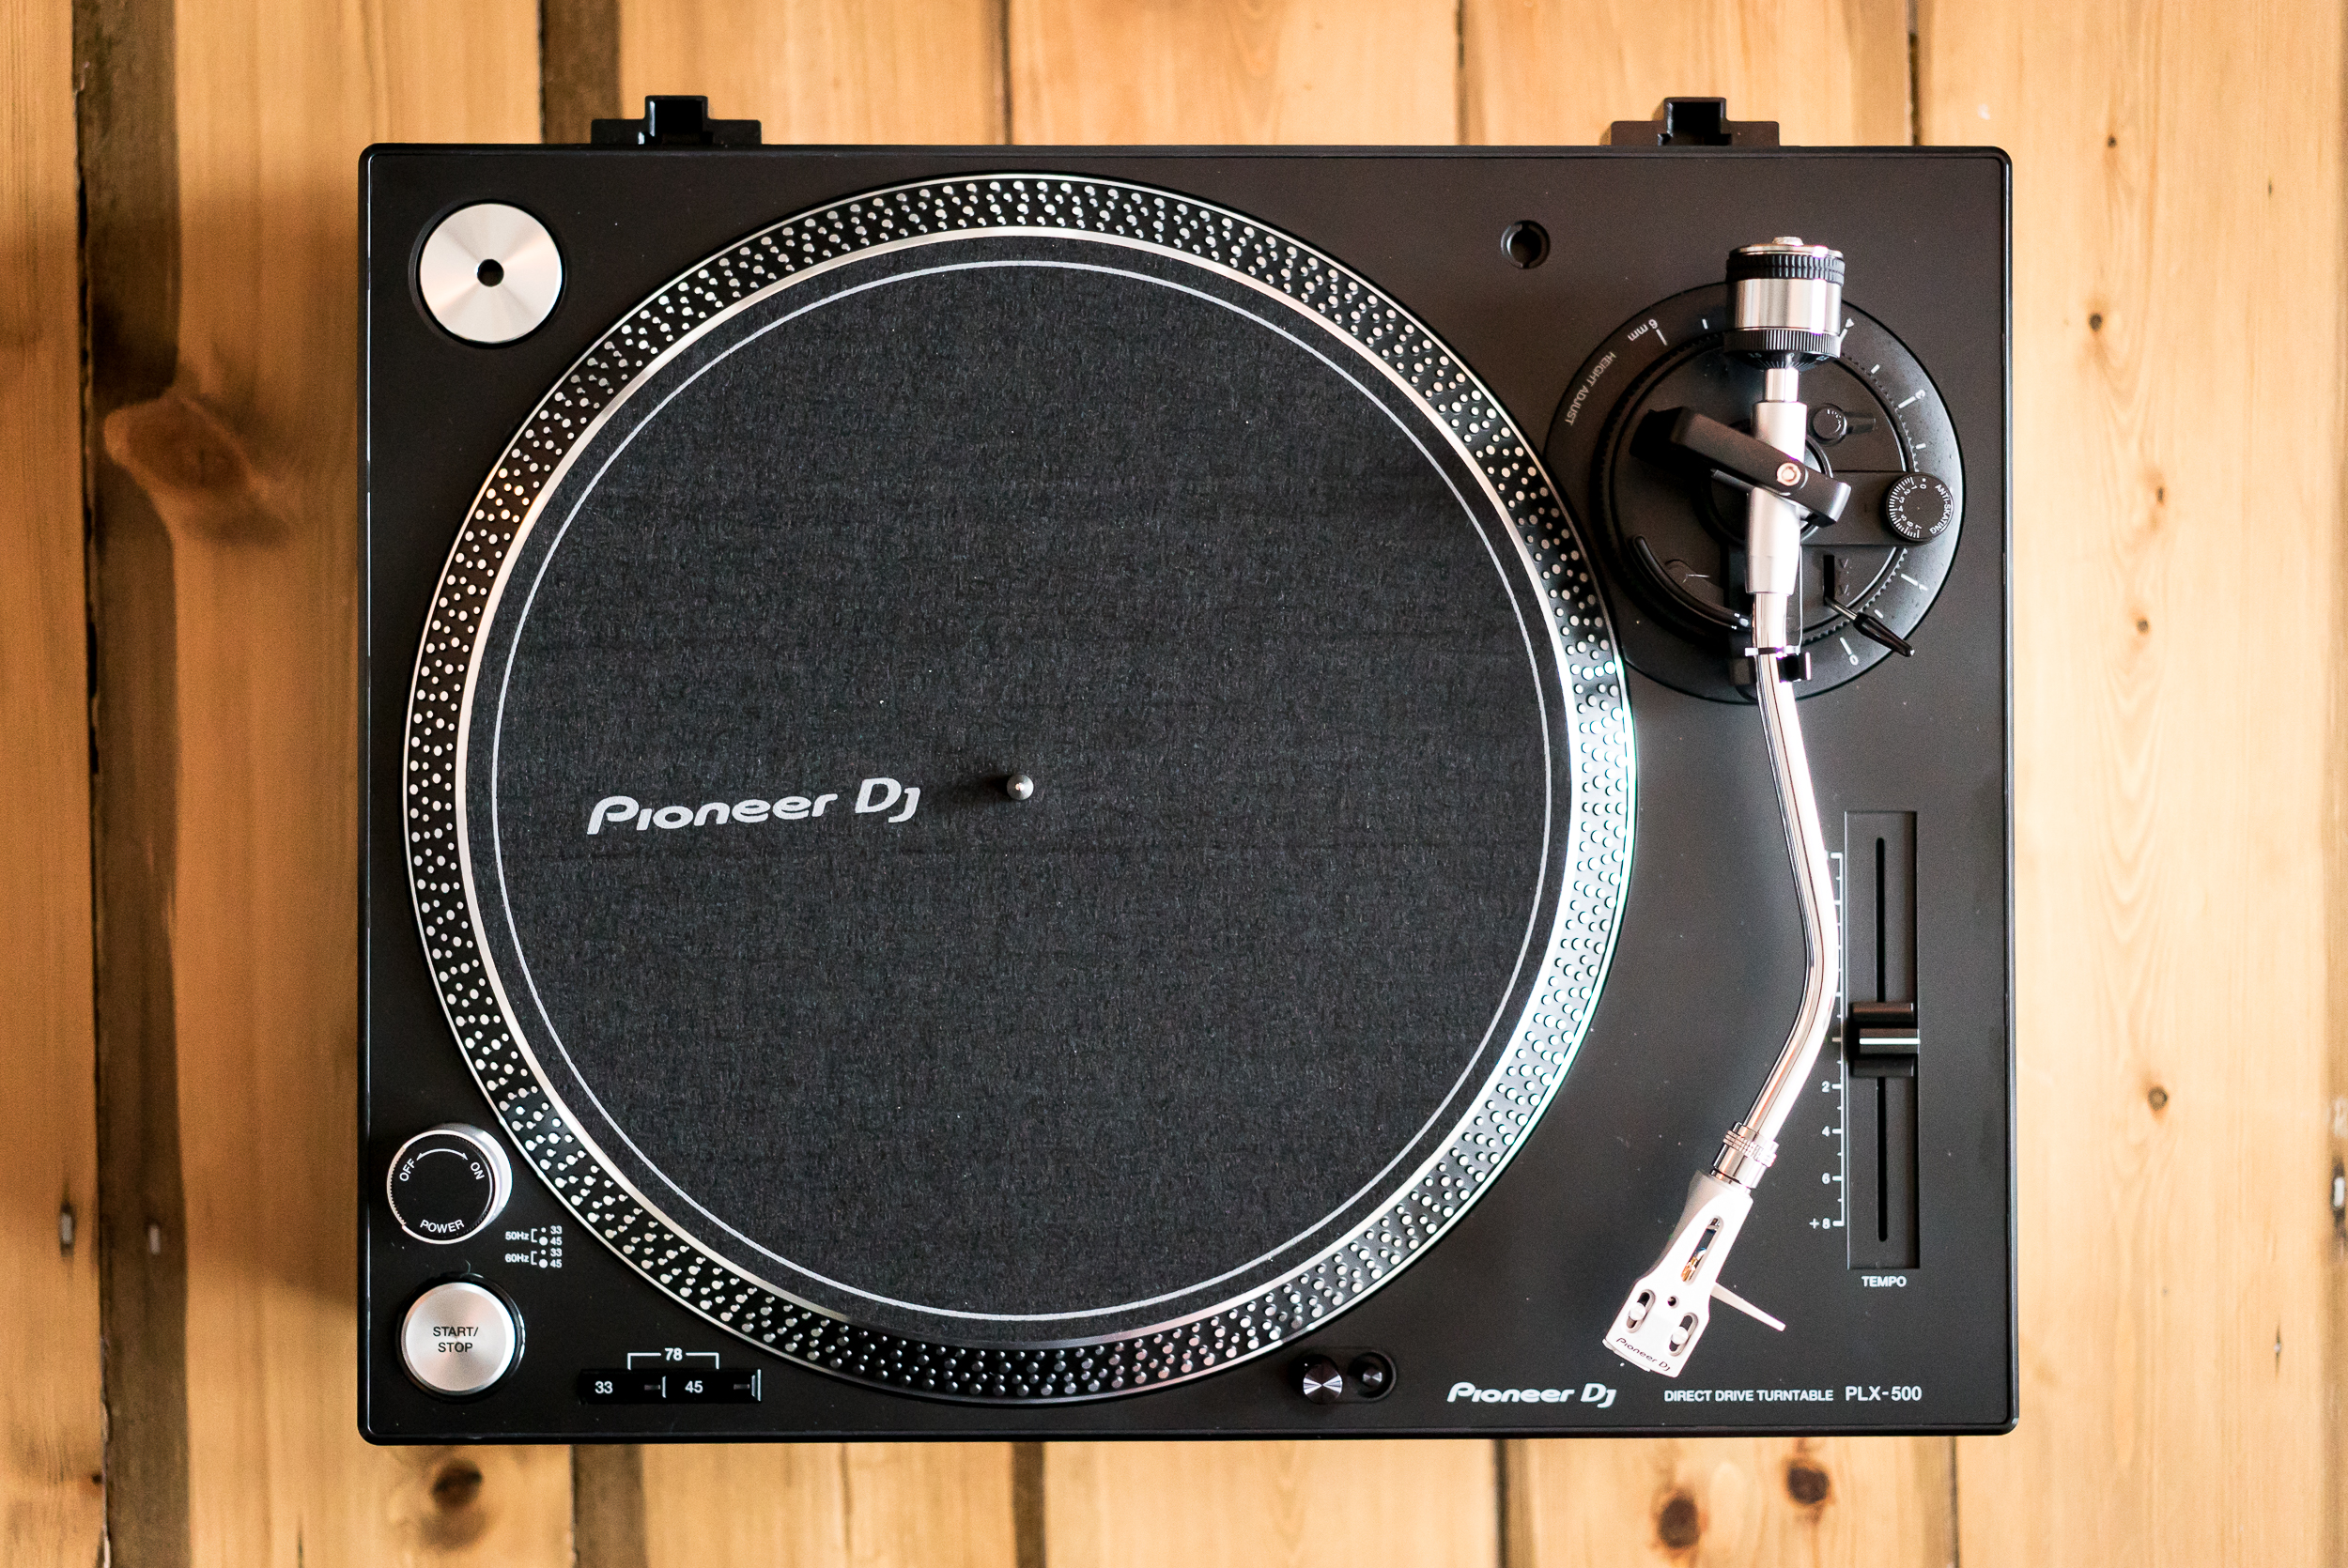 Pioneer Plx 500 Review A Turntable For Vinyl N00bs And